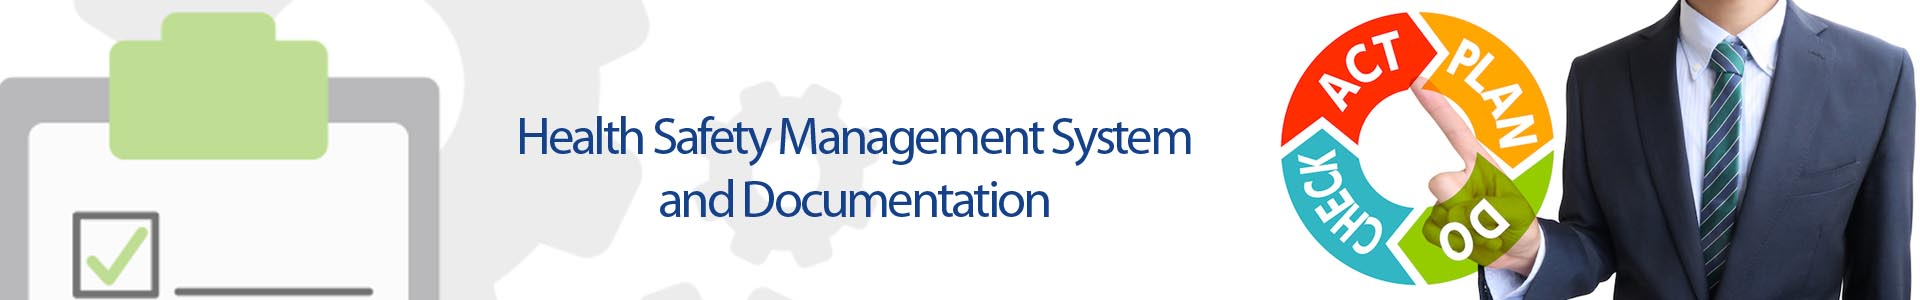 health-safety-management-system-and-documentation